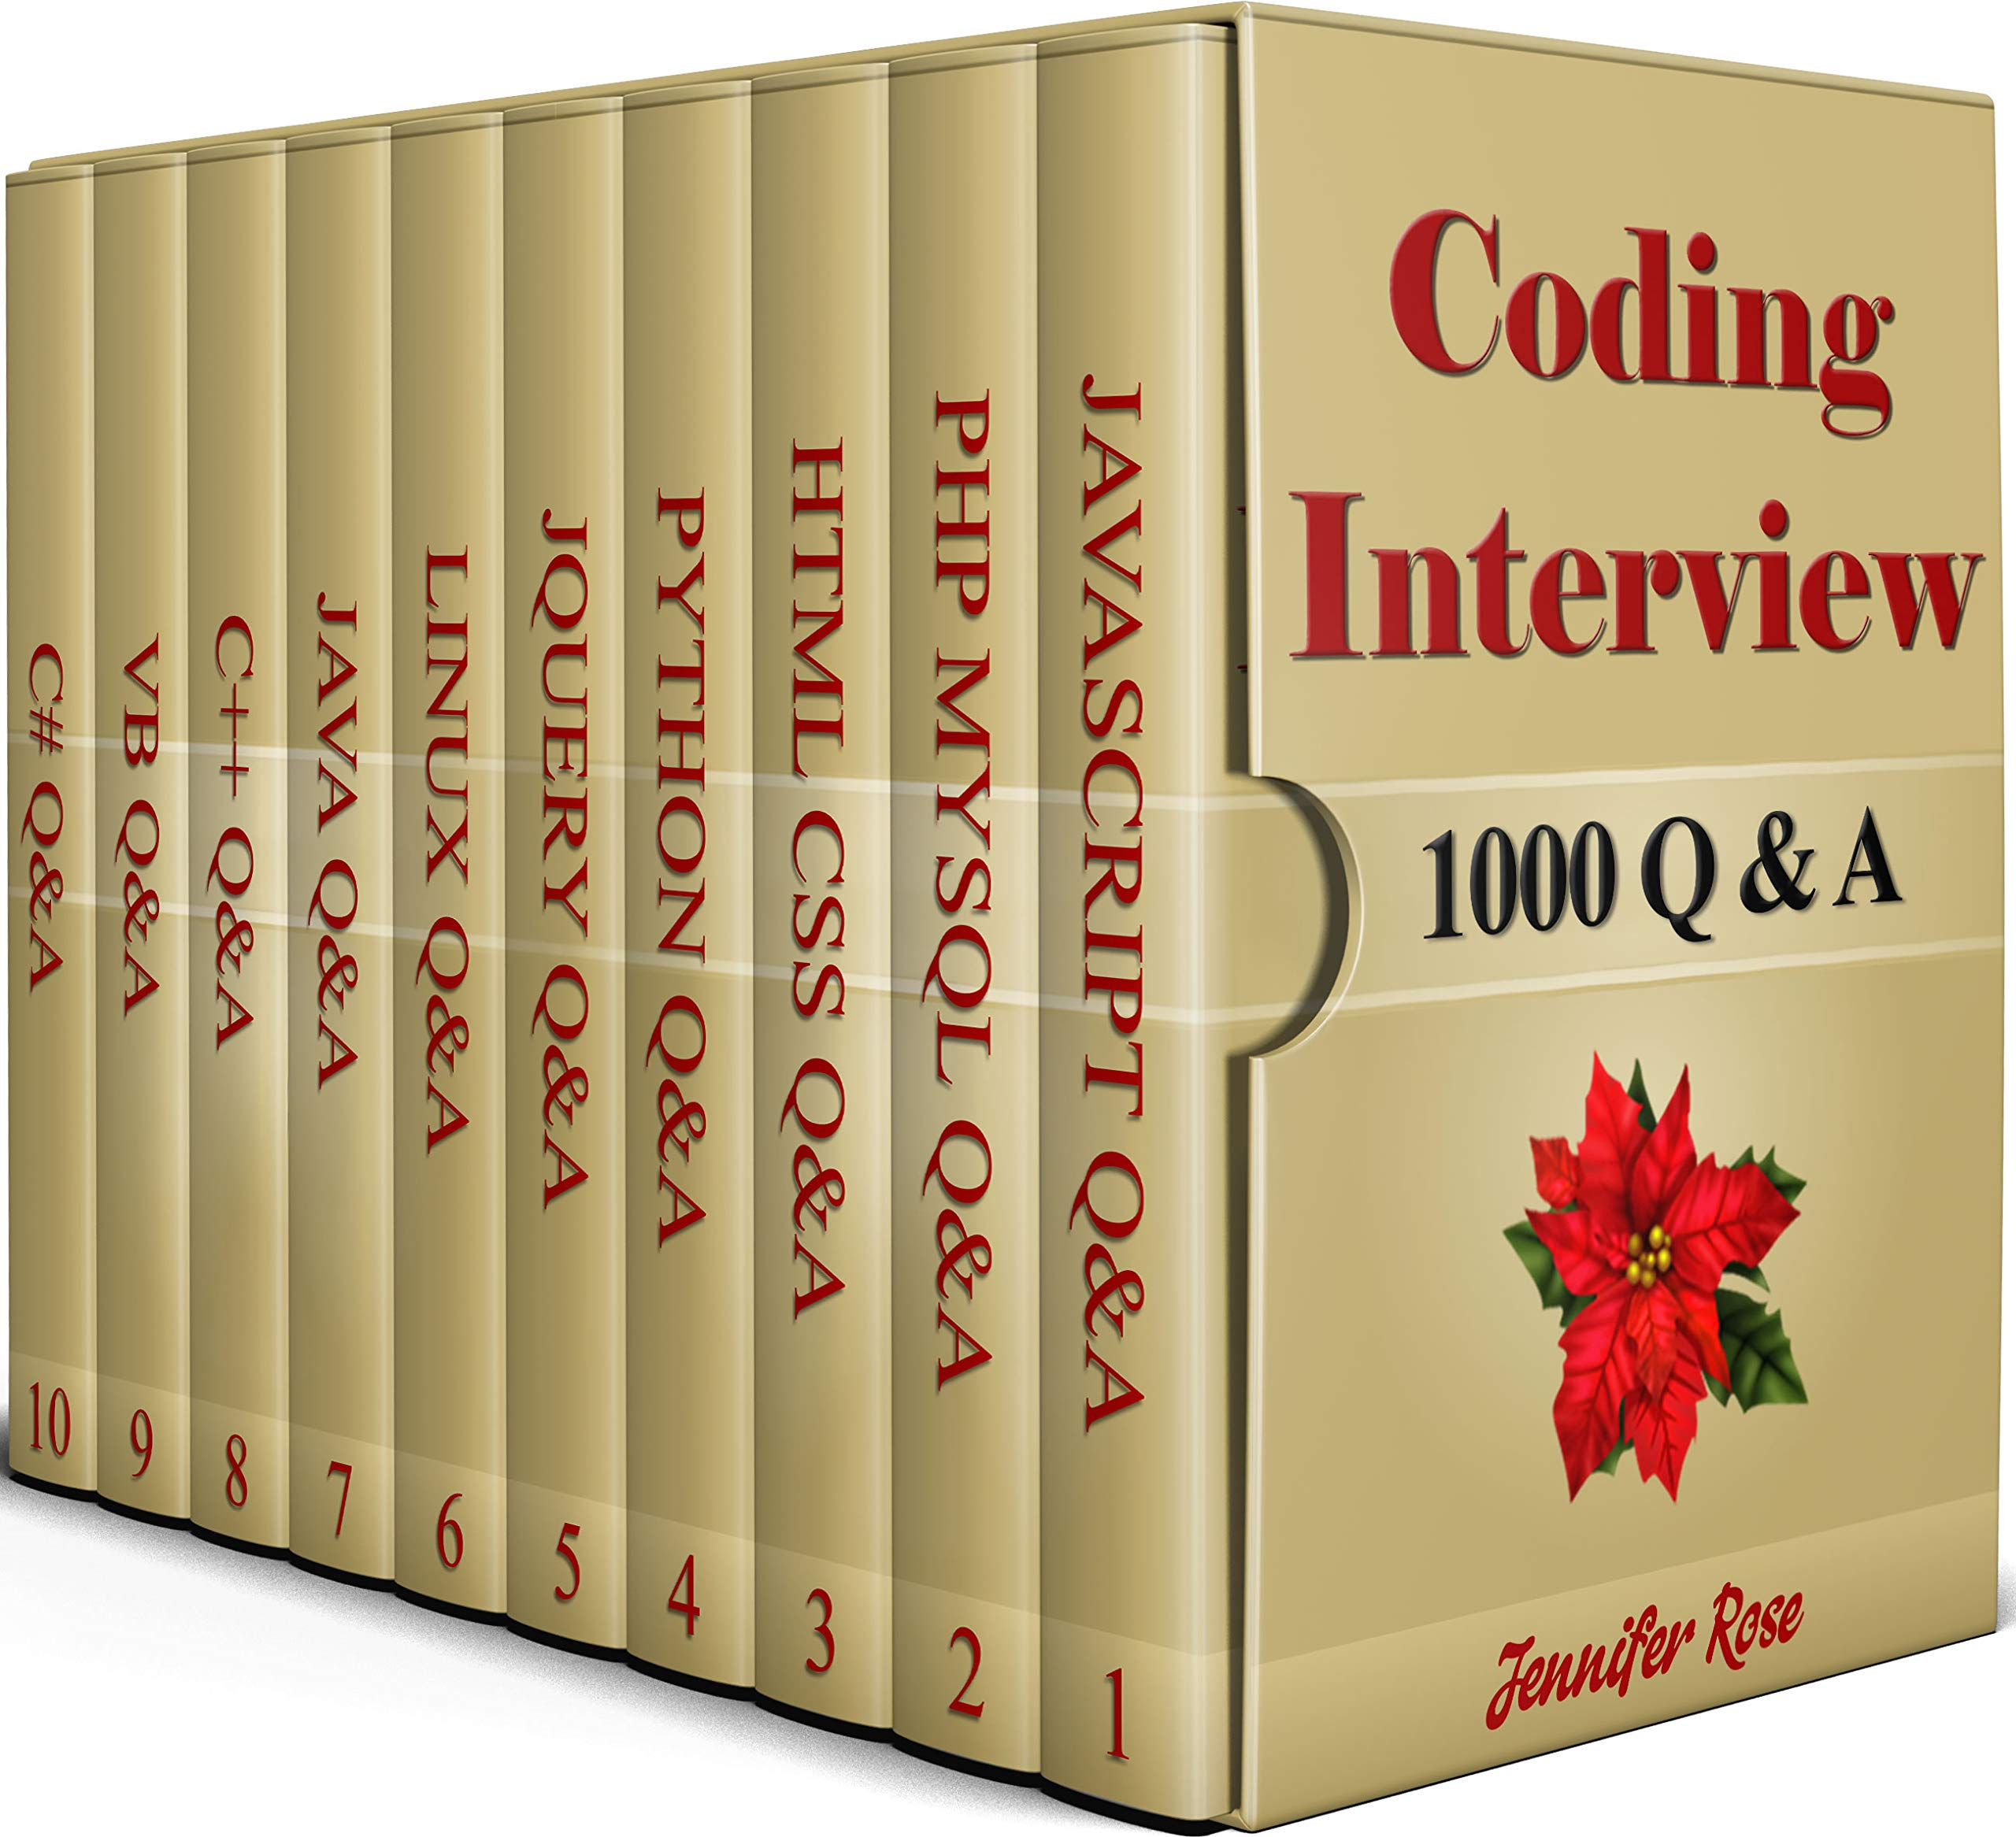 CODING INTERVIEW, 1000 Q & A, Including 1000 Questions & Answers in C#, C++, HTML CSS, JAVA, JAVASCRIPT, JQUERY, LINUX COMMAND LINE, PHP MYSQL, PYTHON, VISUAL BASIC Tests